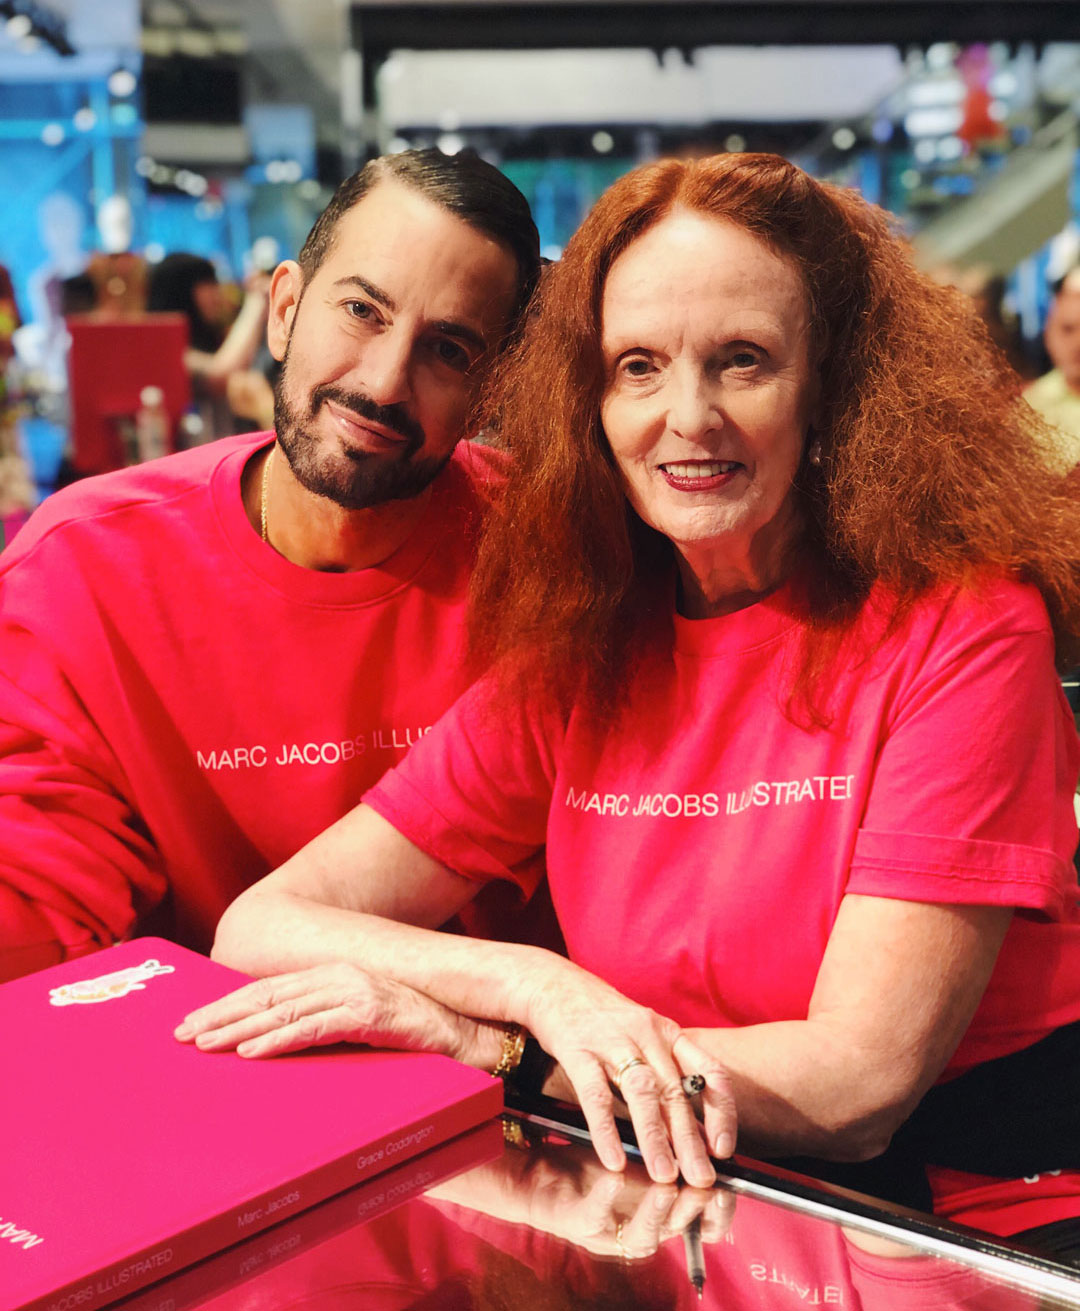 Marc Jacobs and Grace Coddington at their New York signing. Photograph by Jim Shi, courtesy of his Instagram @jshi809